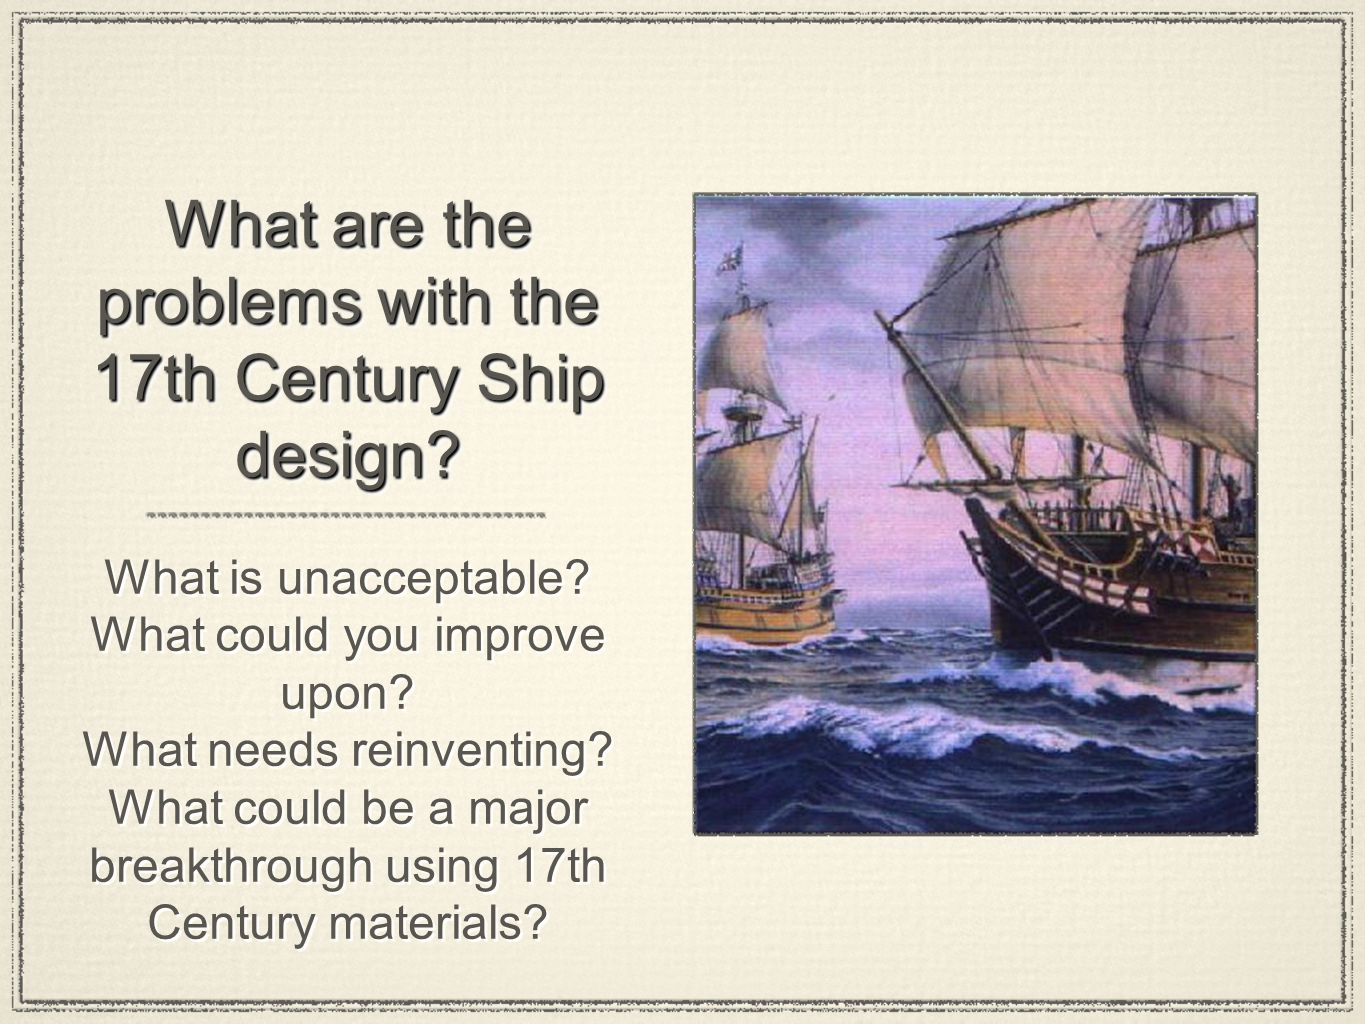 What are the problems with the 17th Century Ship design